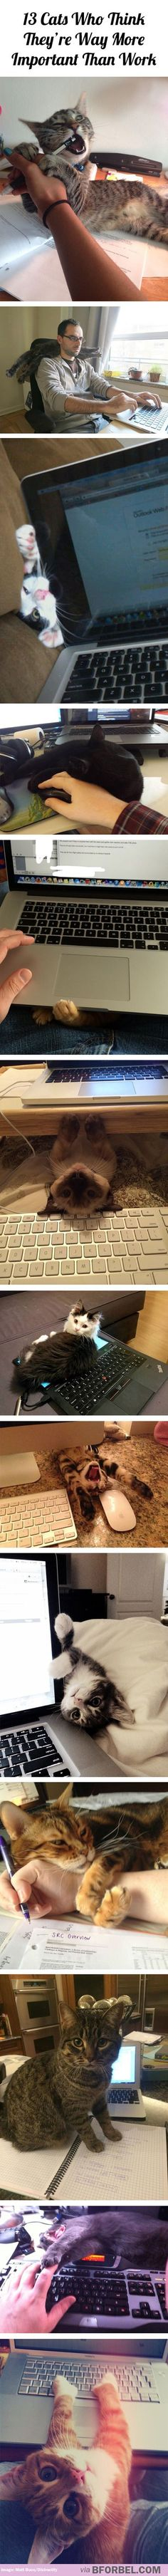 13 cats who think theyre way more important than work